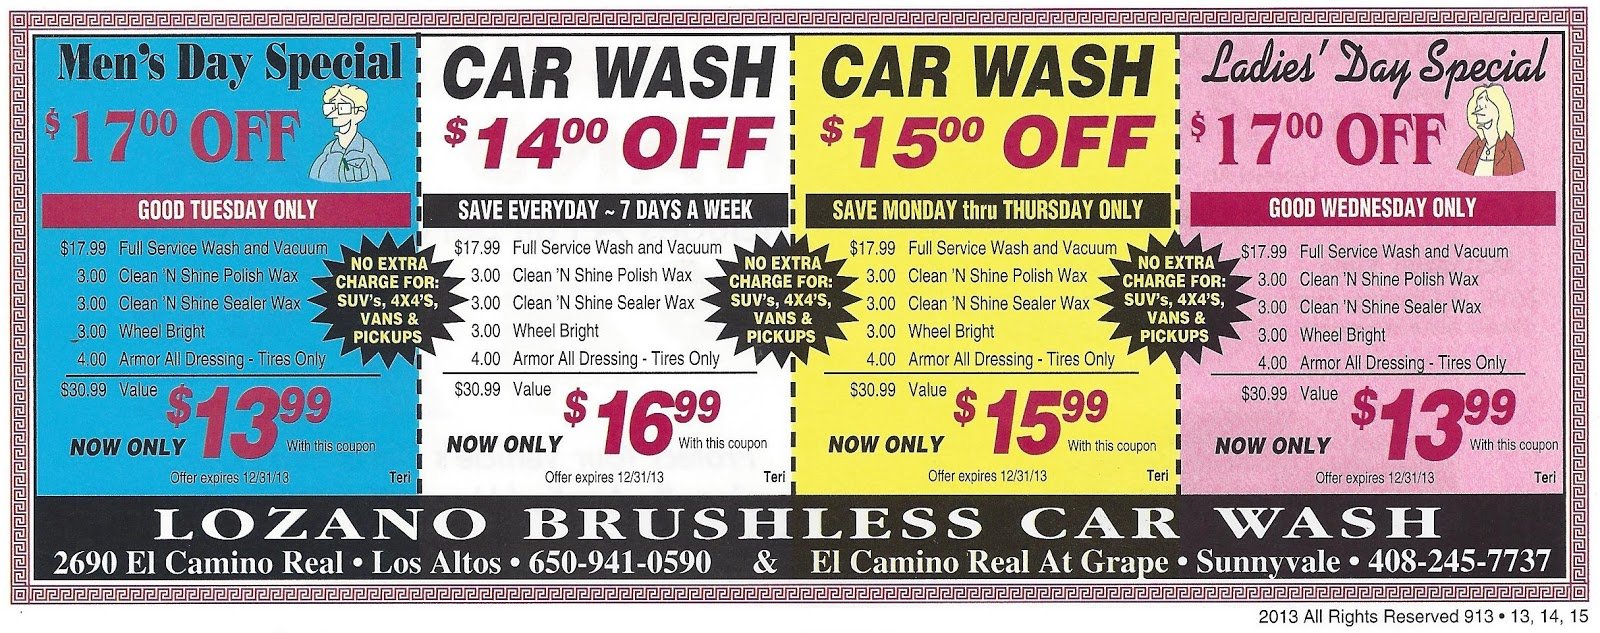 Car Wash Near Me Prices >> Mountain View Car Wash Coupons Staples Furniture Coupon